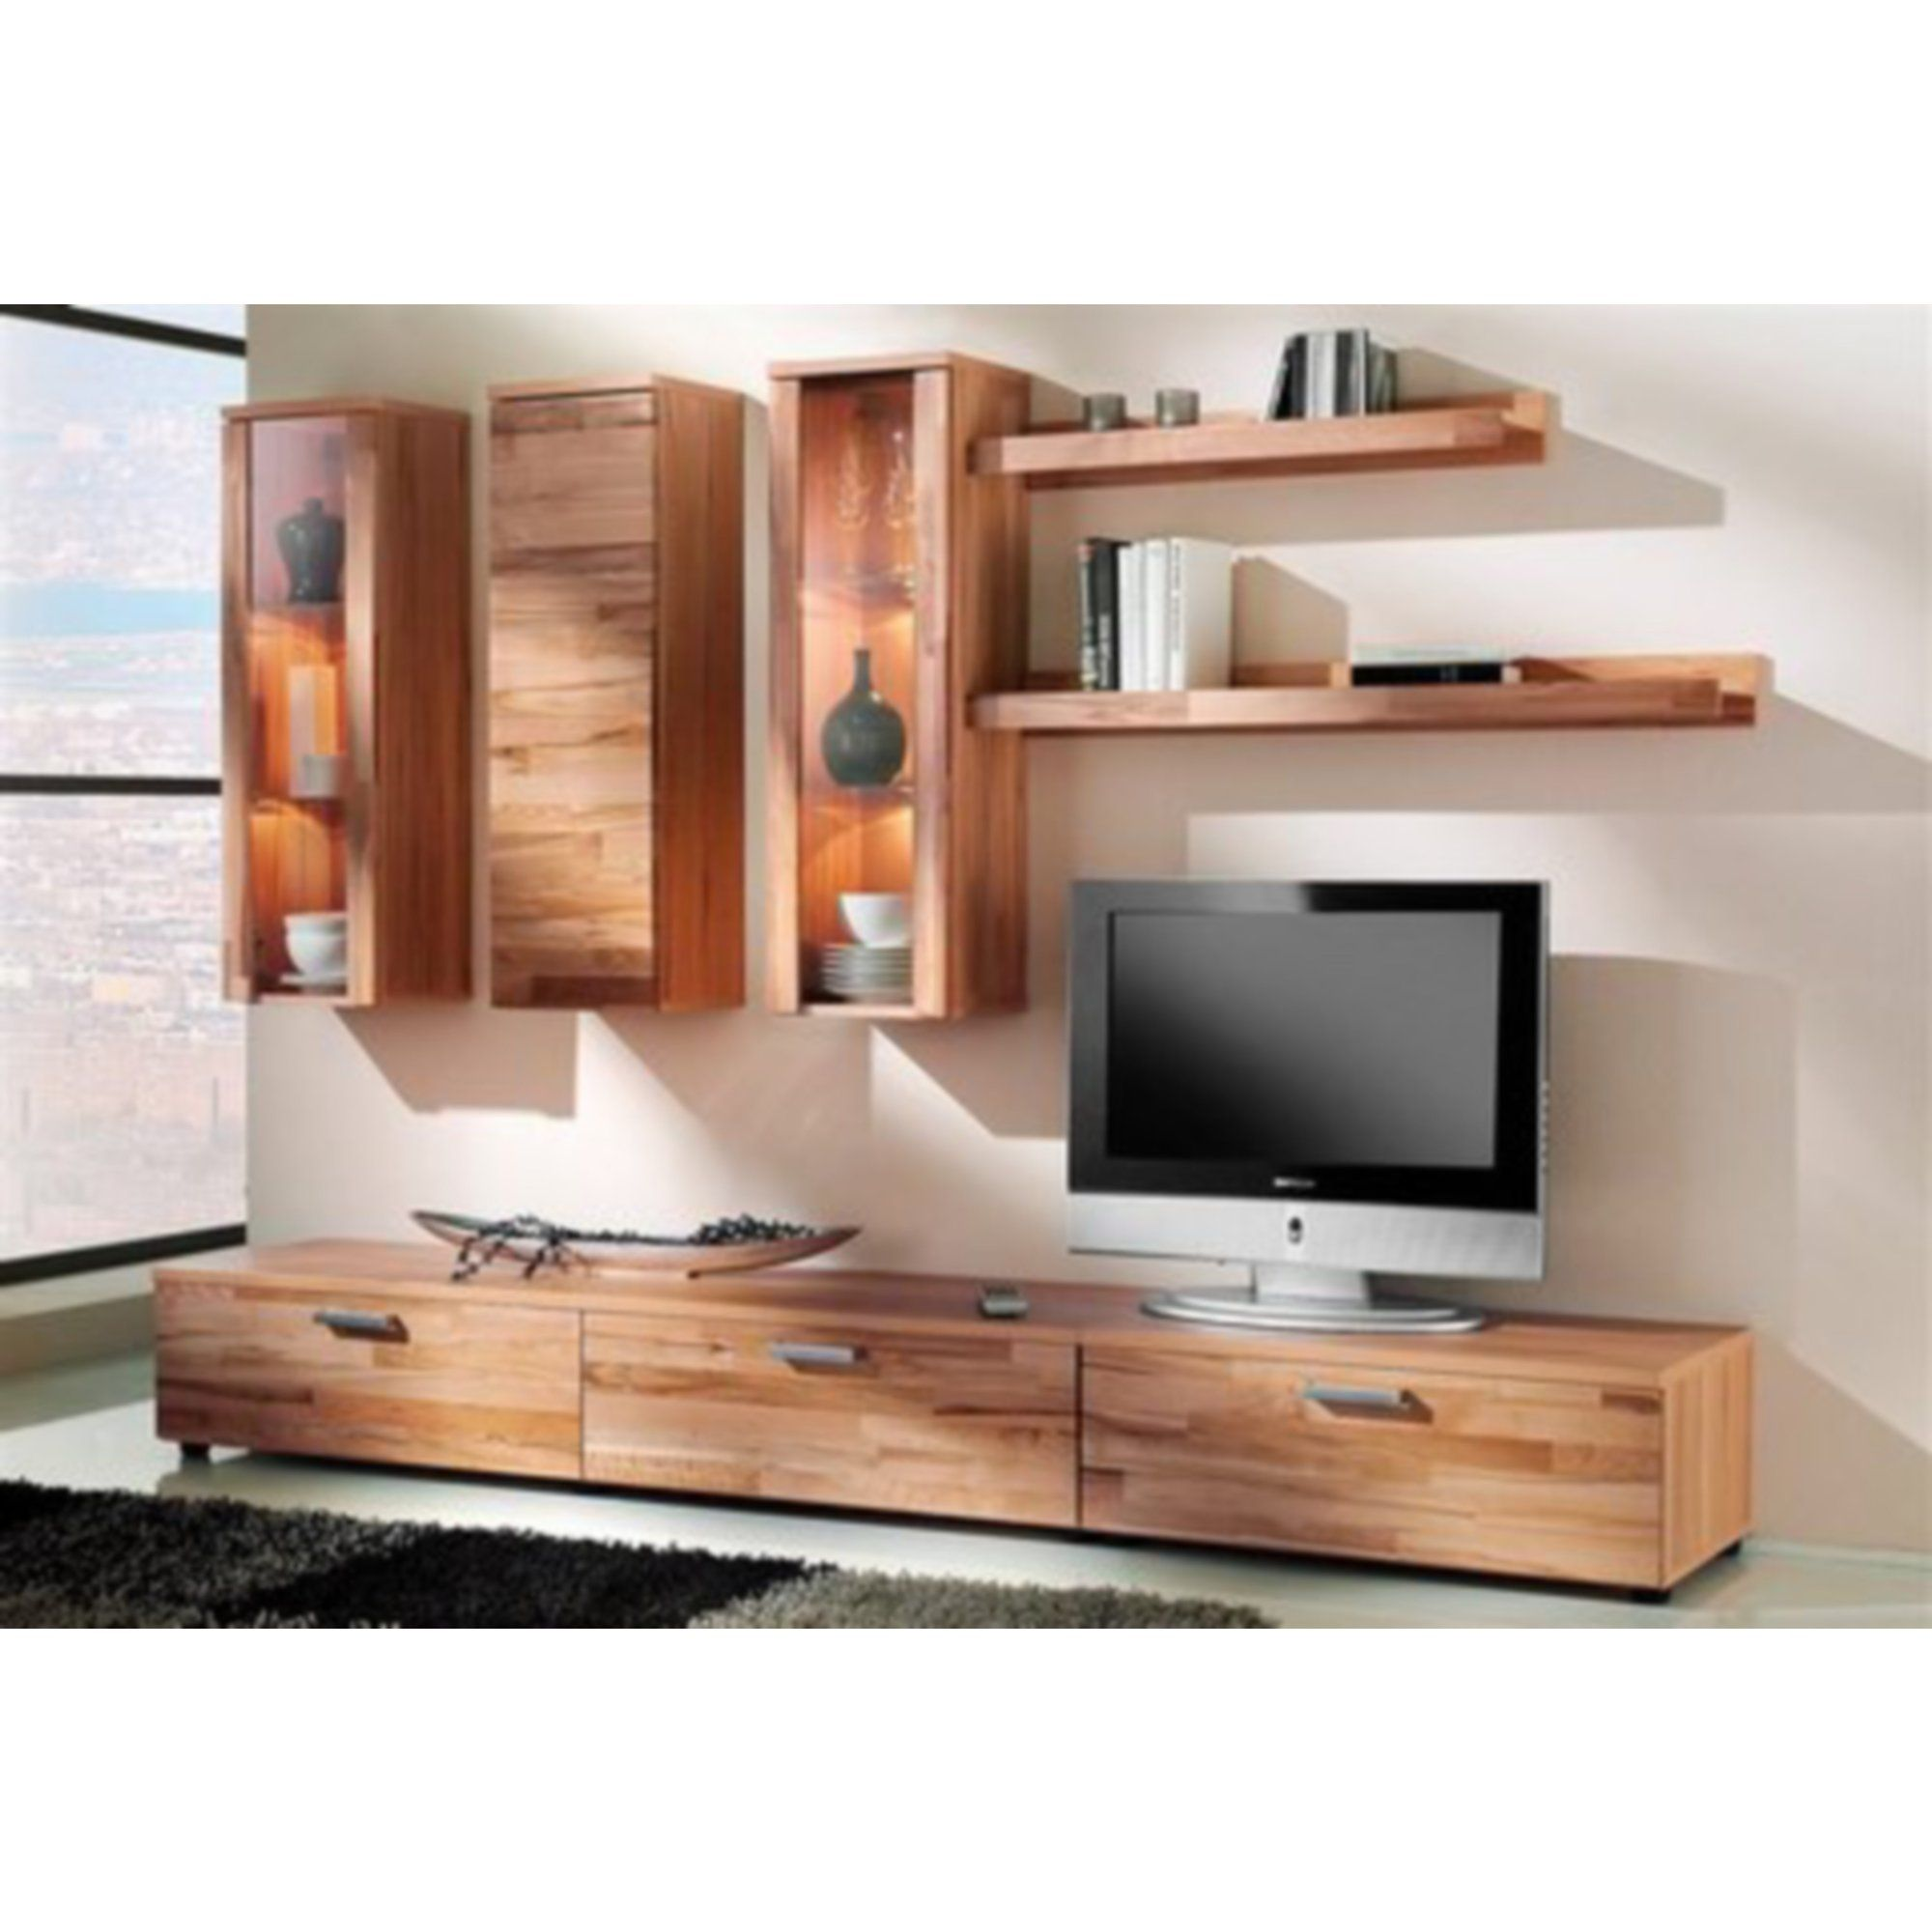 ensemble de salon audio vid o 3 meubles suspendus 2 tag res murales 2 meubles bas tv. Black Bedroom Furniture Sets. Home Design Ideas